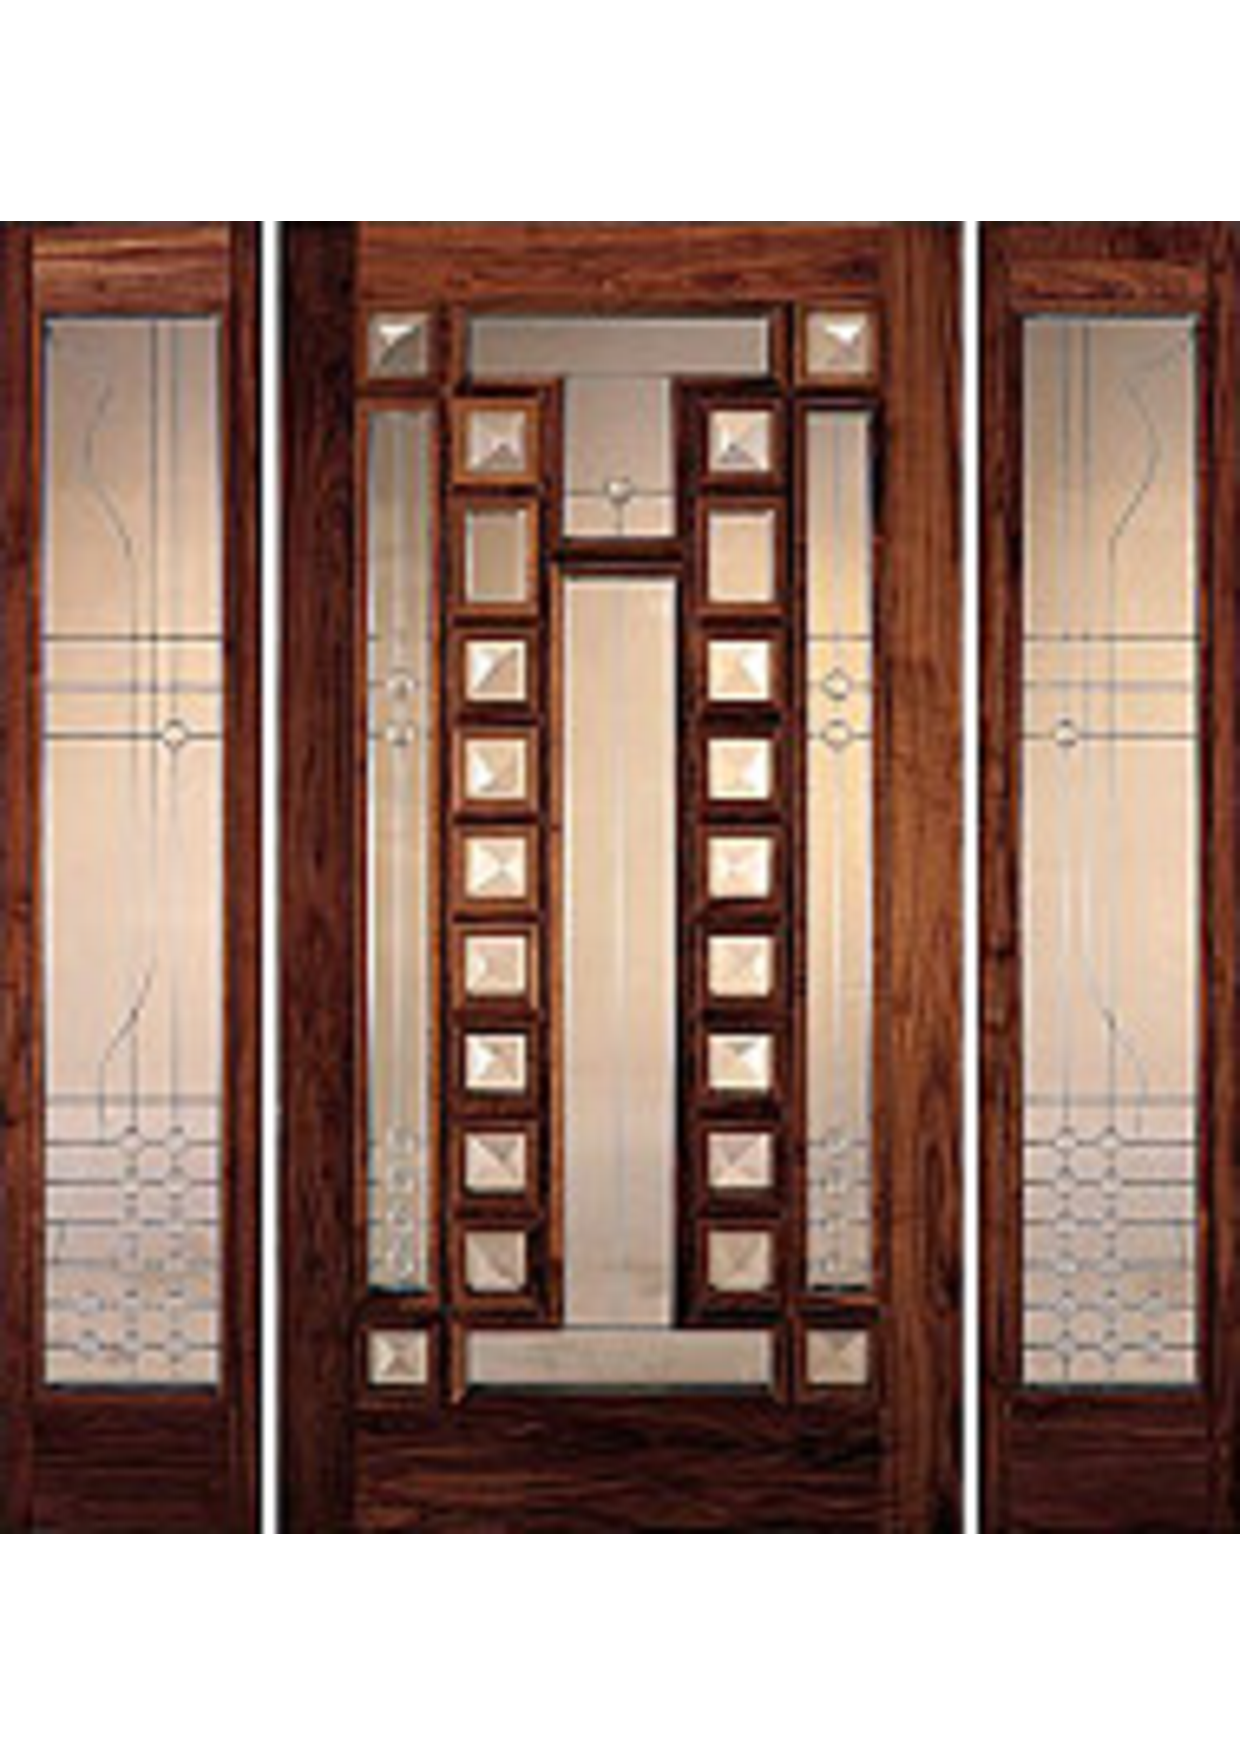 Living room door designs in india nakicphotography for Front door designs indian houses